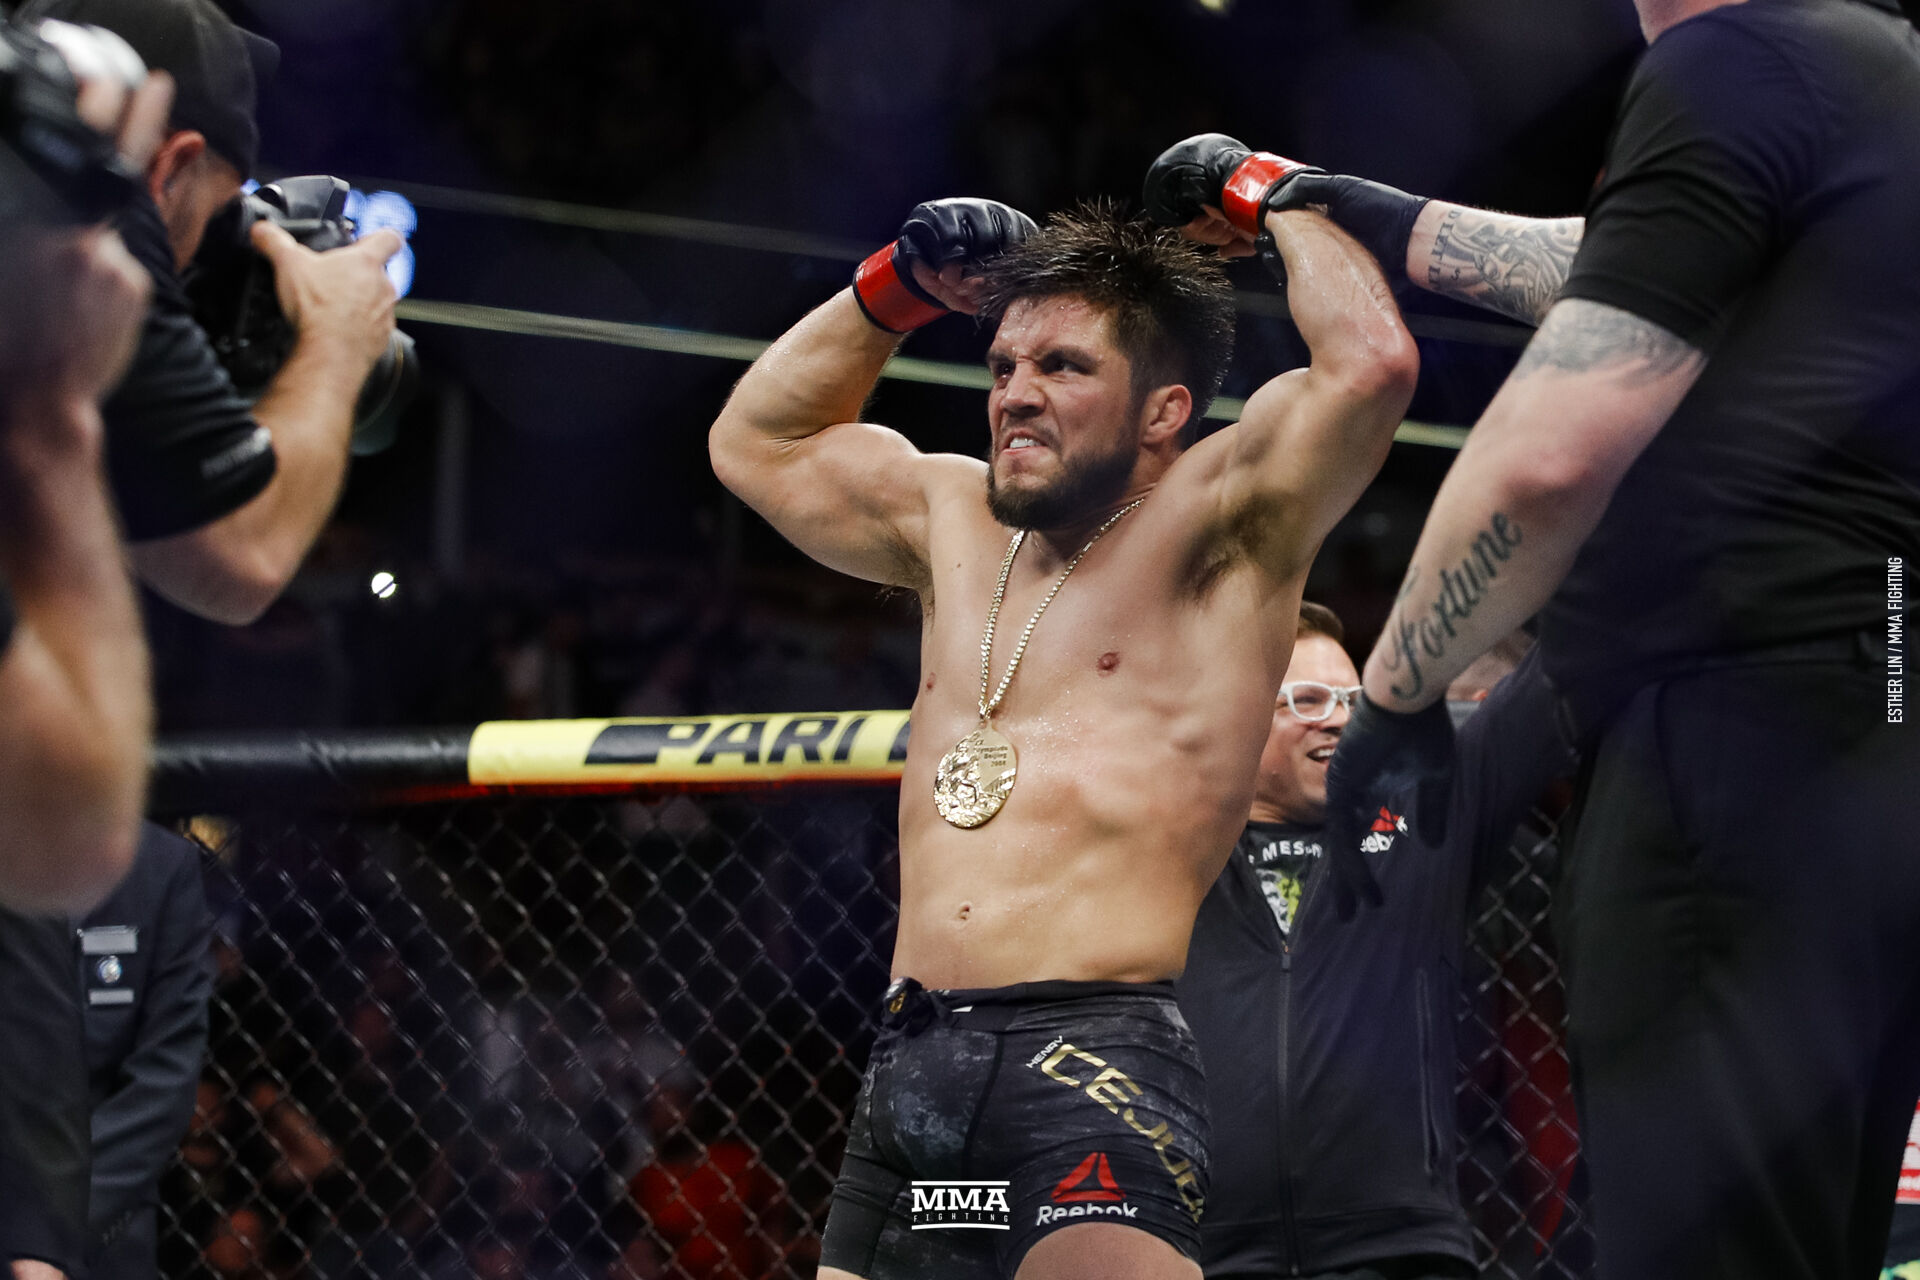 cb7eb6fa1 UFC champ Henry Cejudo likely out until 2020 due to shoulder surgery